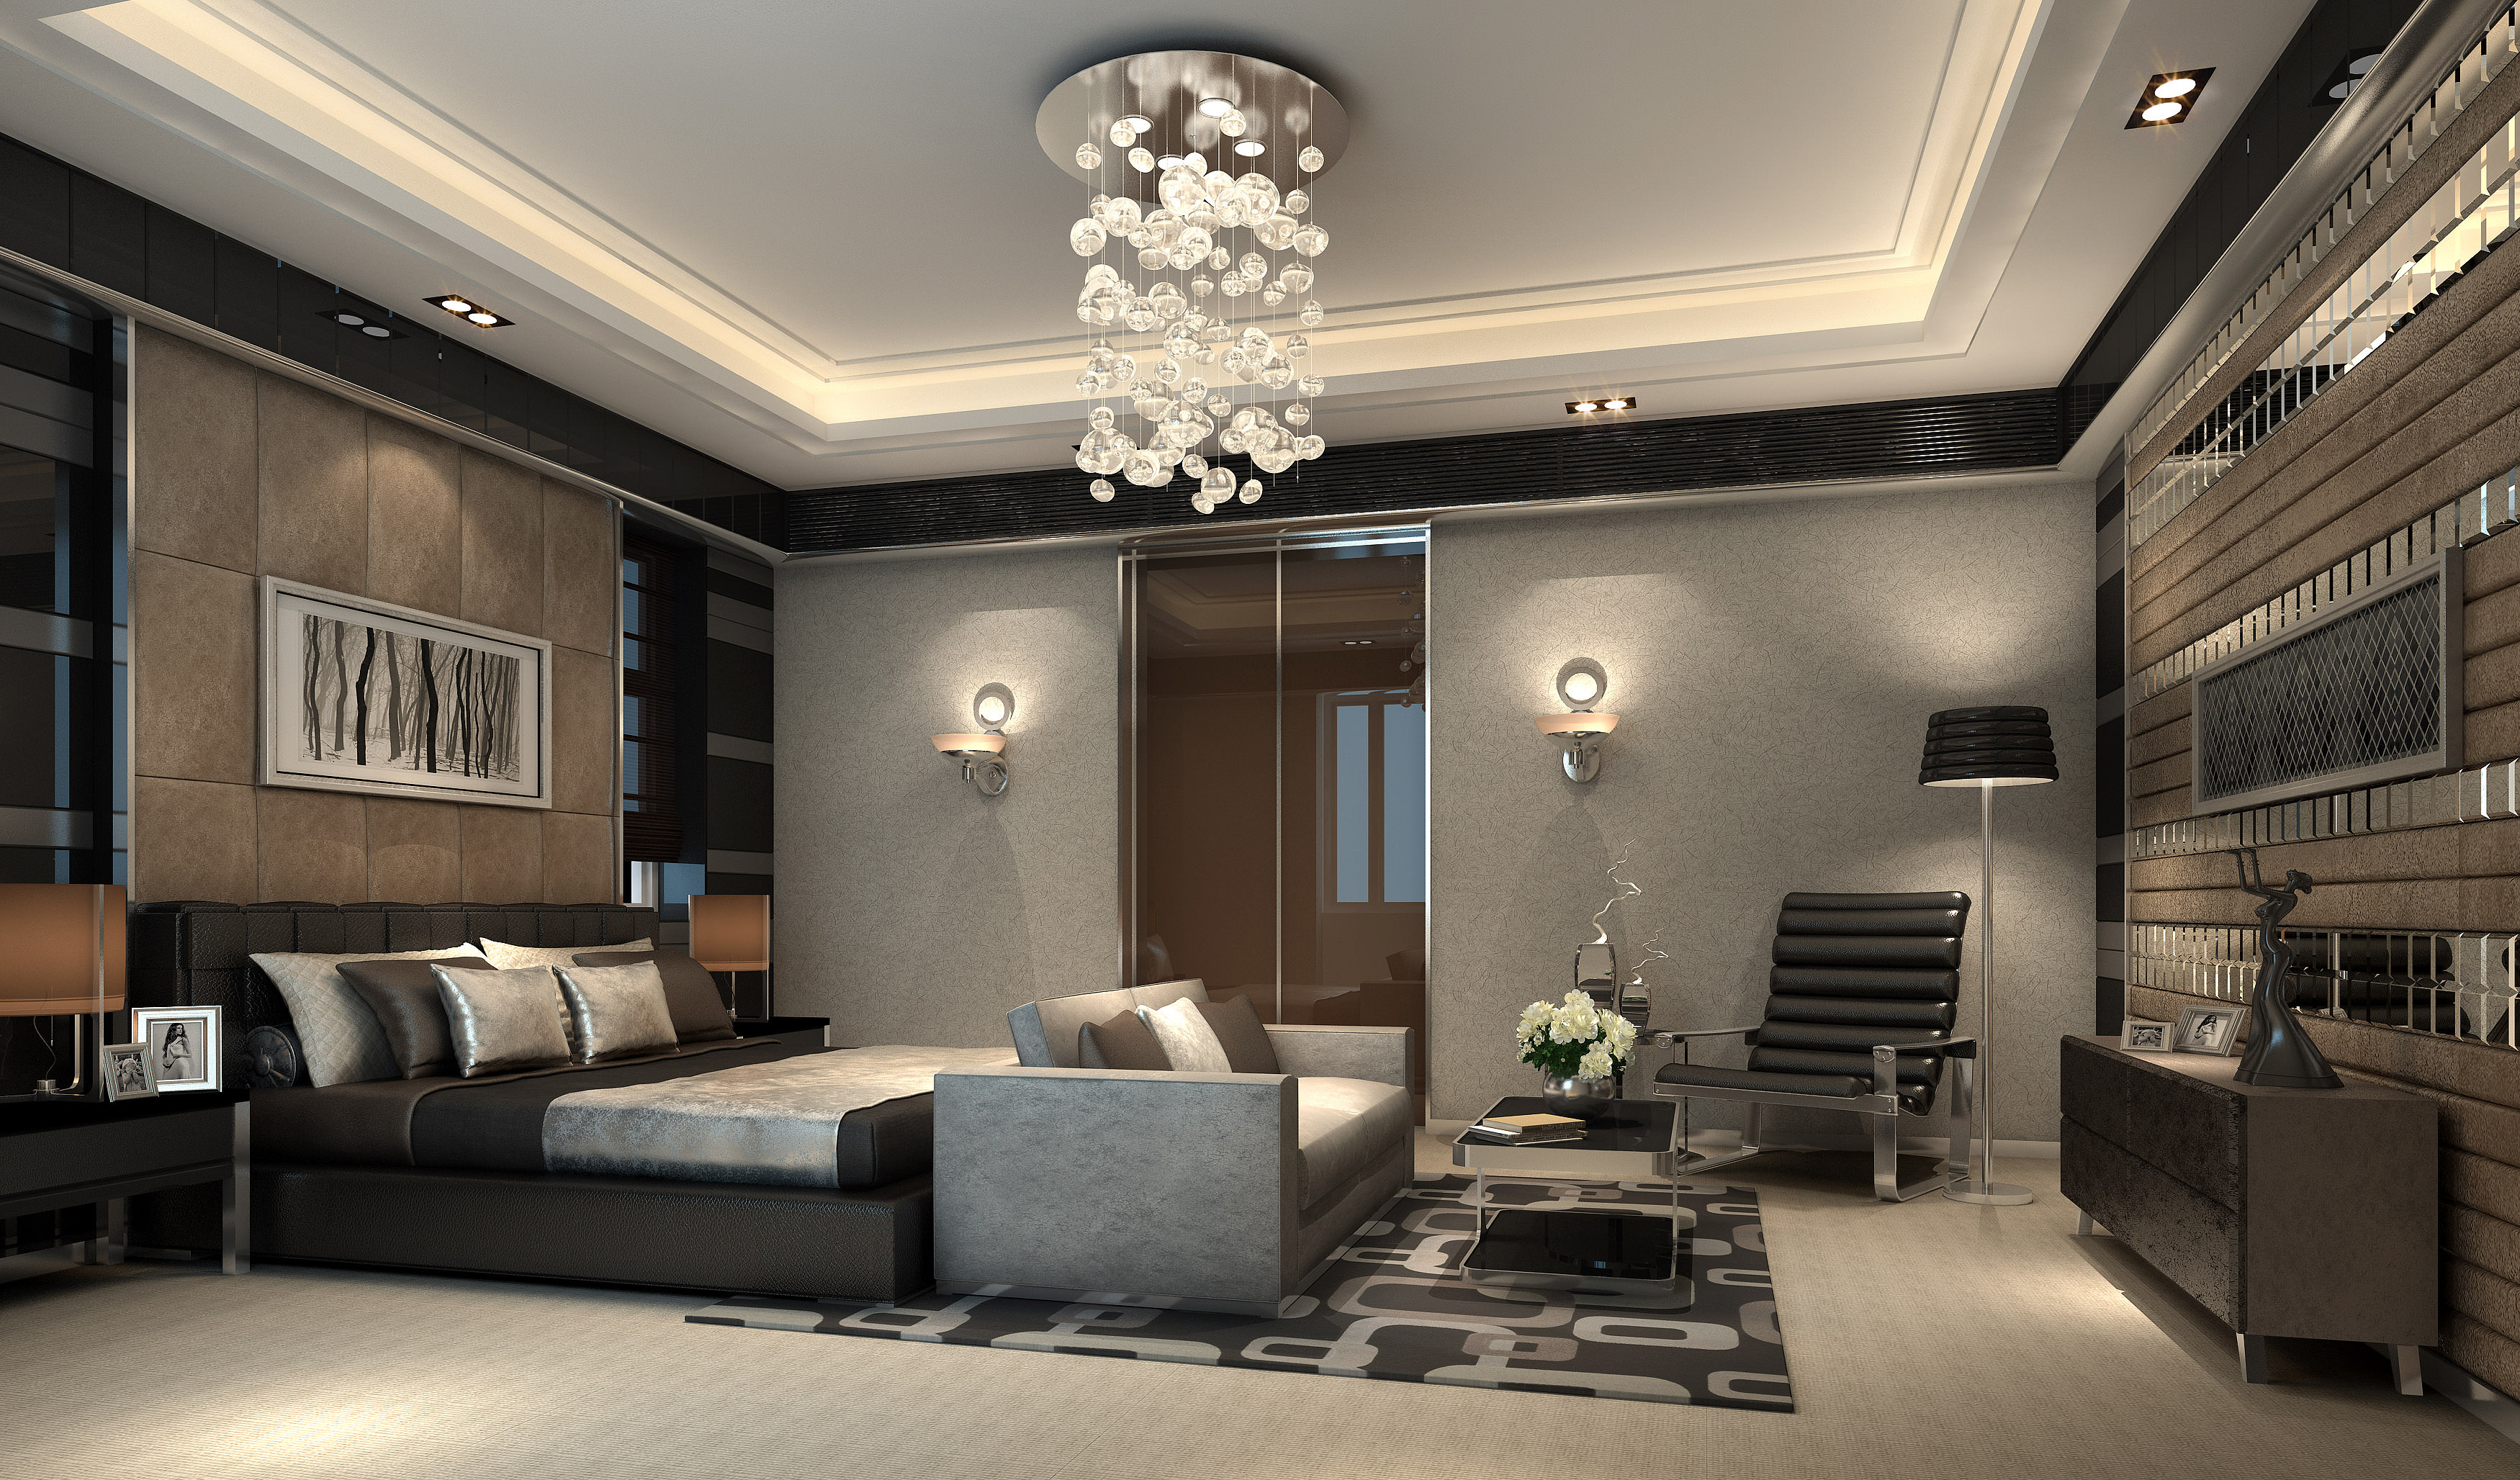 3d models bedrooms interior design d model luxurious for Model bedroom interior design